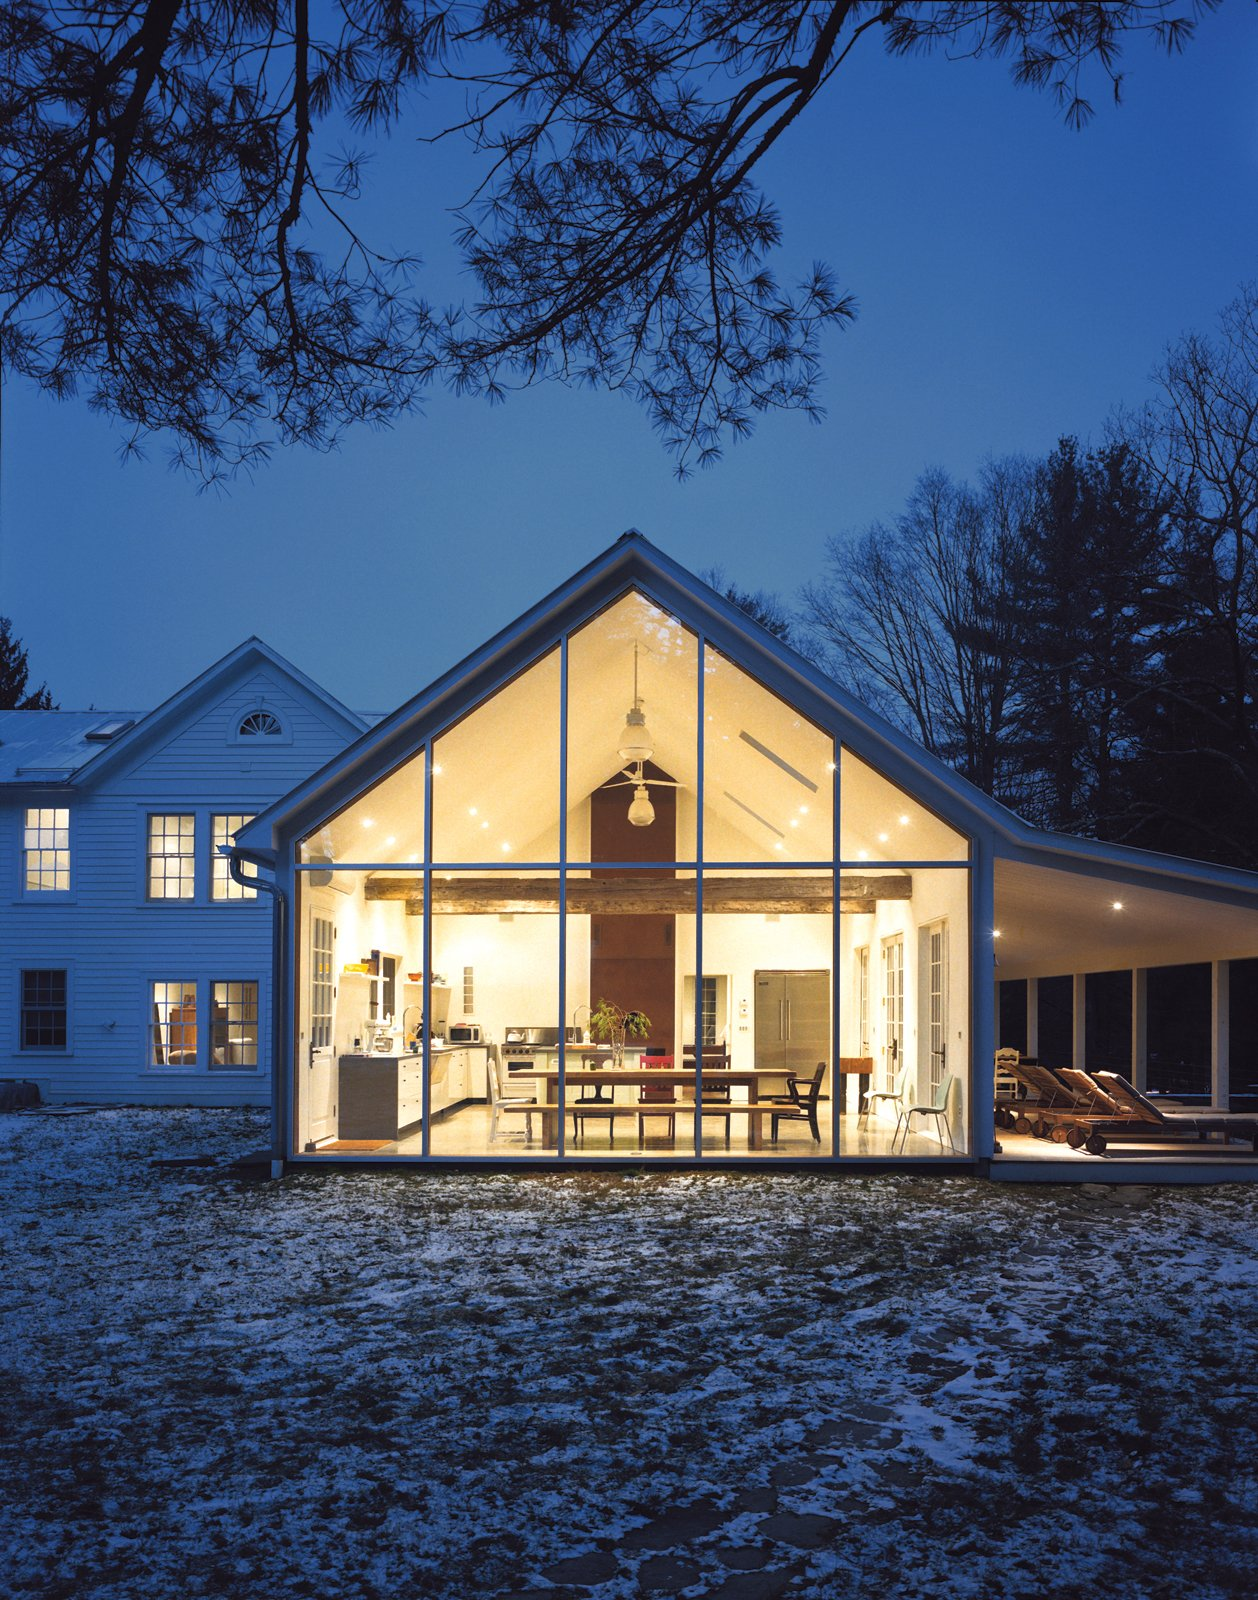 The Floating Farmhouse's semitransparent addition has a roofline that matches the pitch of the original 1820s farmhouse. A porch, tucked under the side eaves, is cantilevered over a stream that runs through the property. Ikea loungers are illuminated from the interior by commercial gymnasium lights repurposed as pendant lamps. Hope Floats - Photo 8 of 12